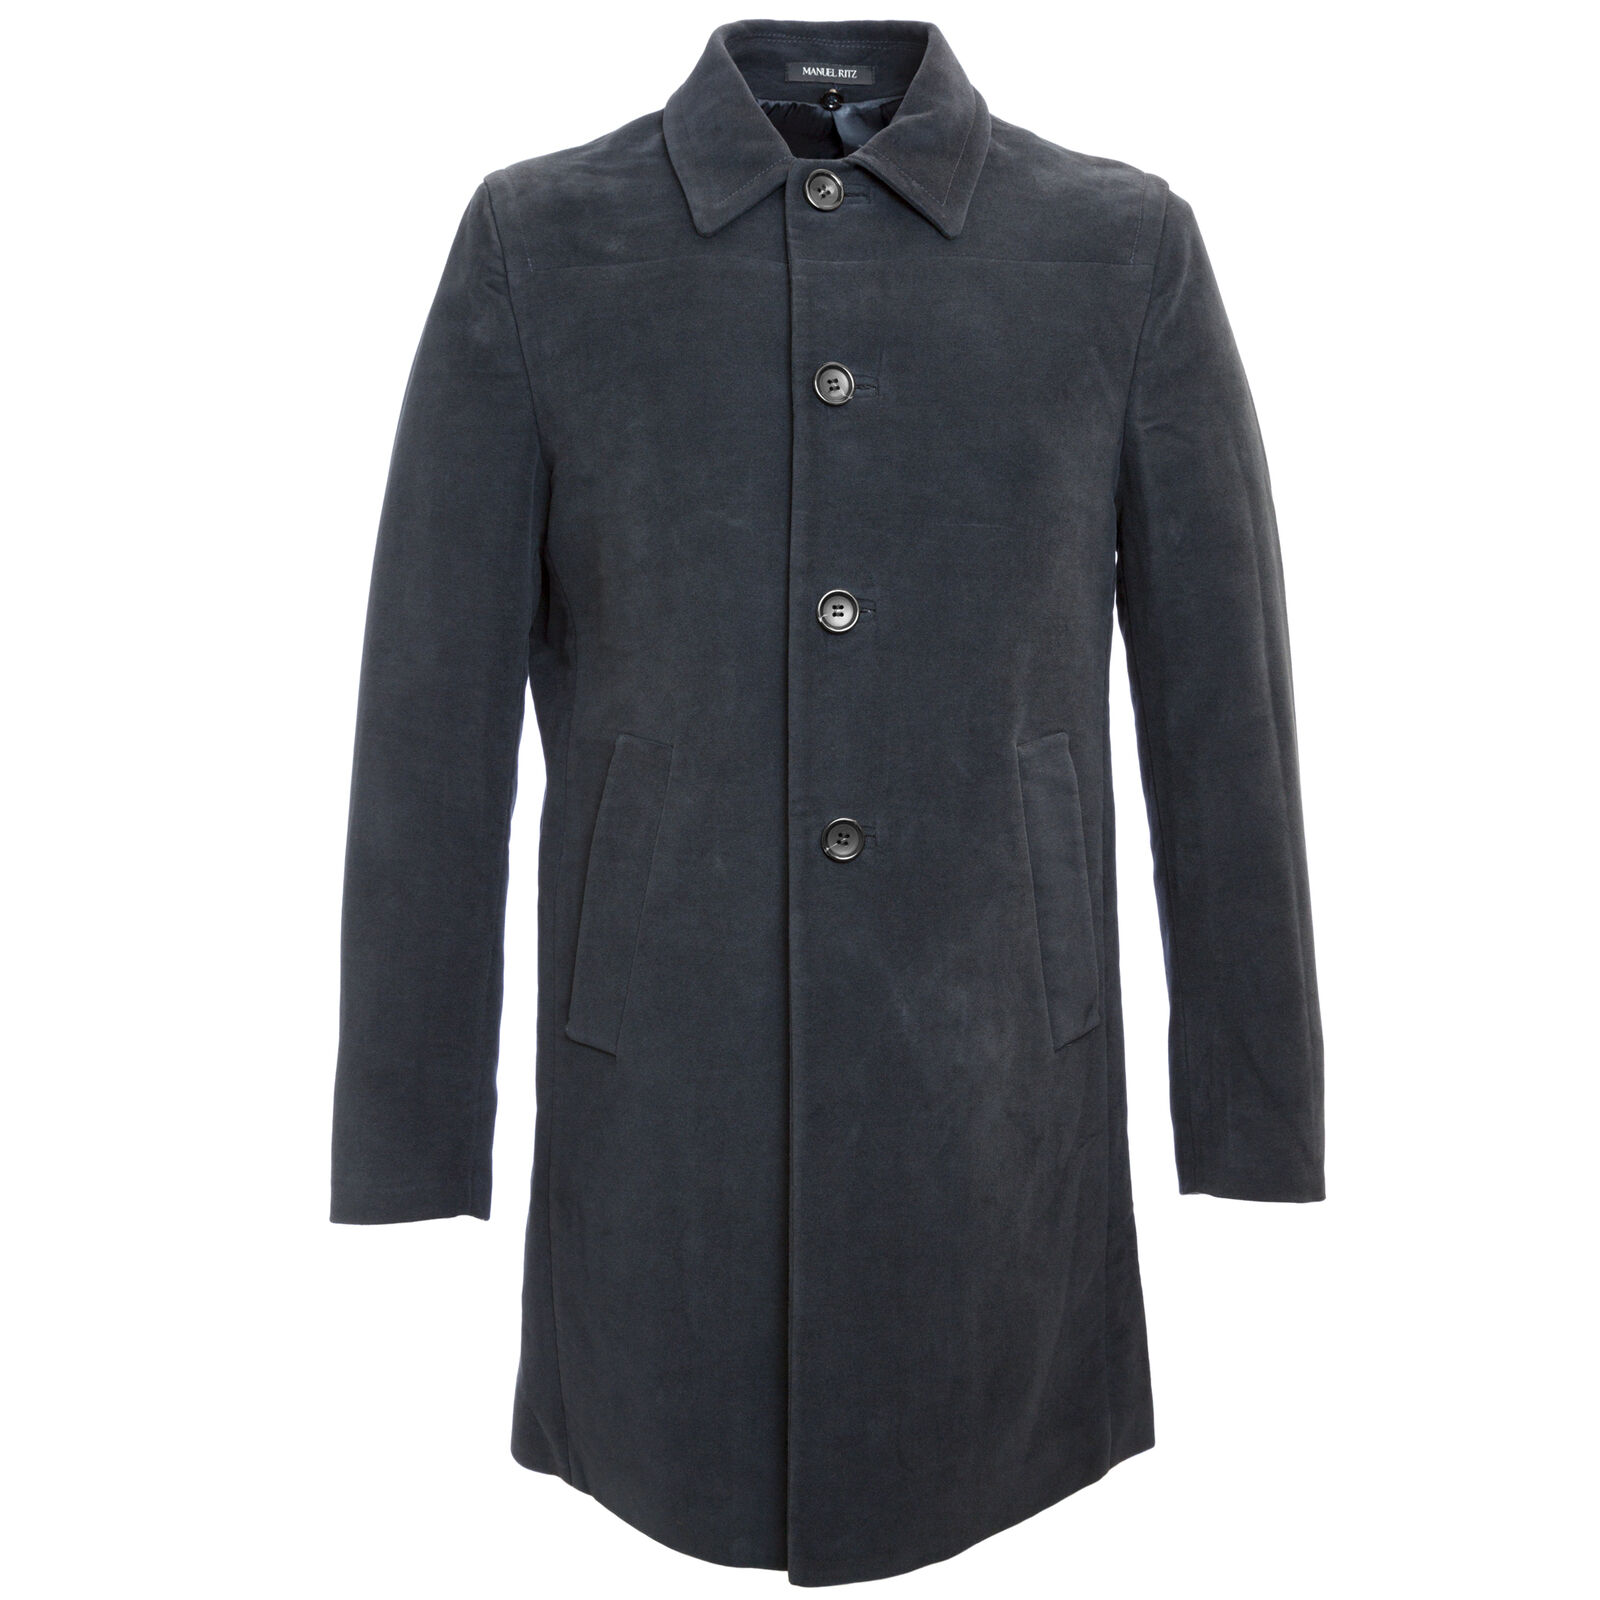 MANUEL RITZ Navy bluee Single Breasted Cotton Peacoat 113C4438  NWT